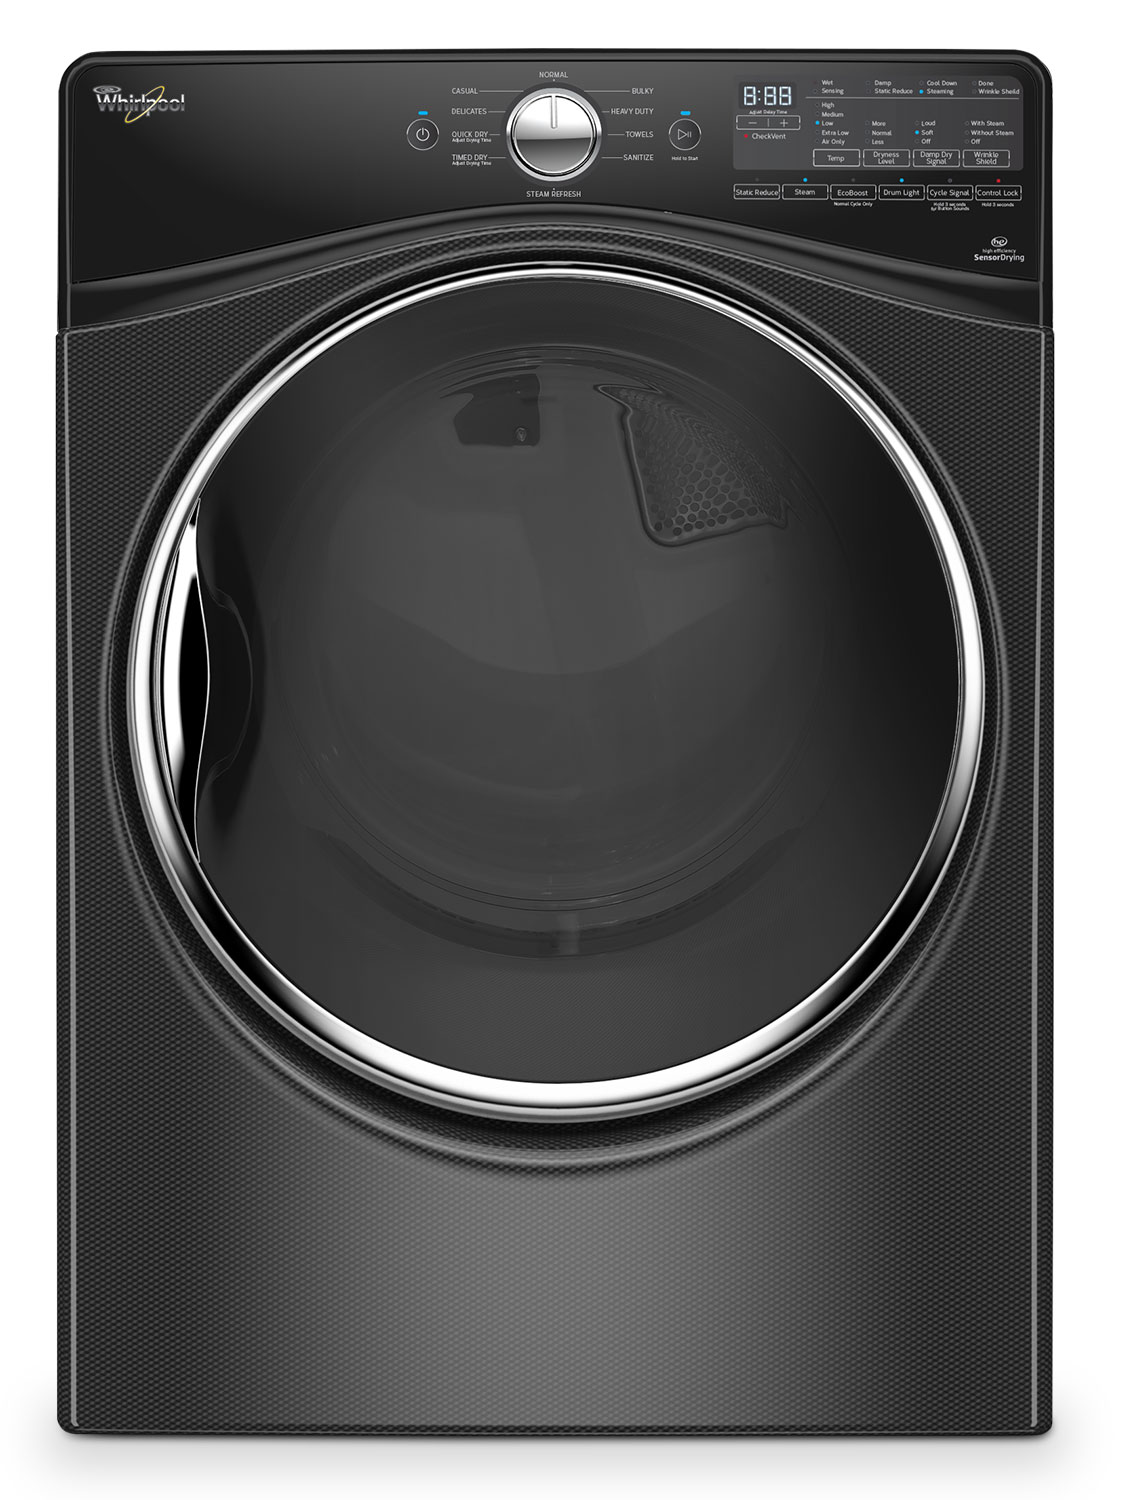 Washers and Dryers - Whirlpool 8.5 Cu. Ft. Electric Dryer – YWED92HEFBD